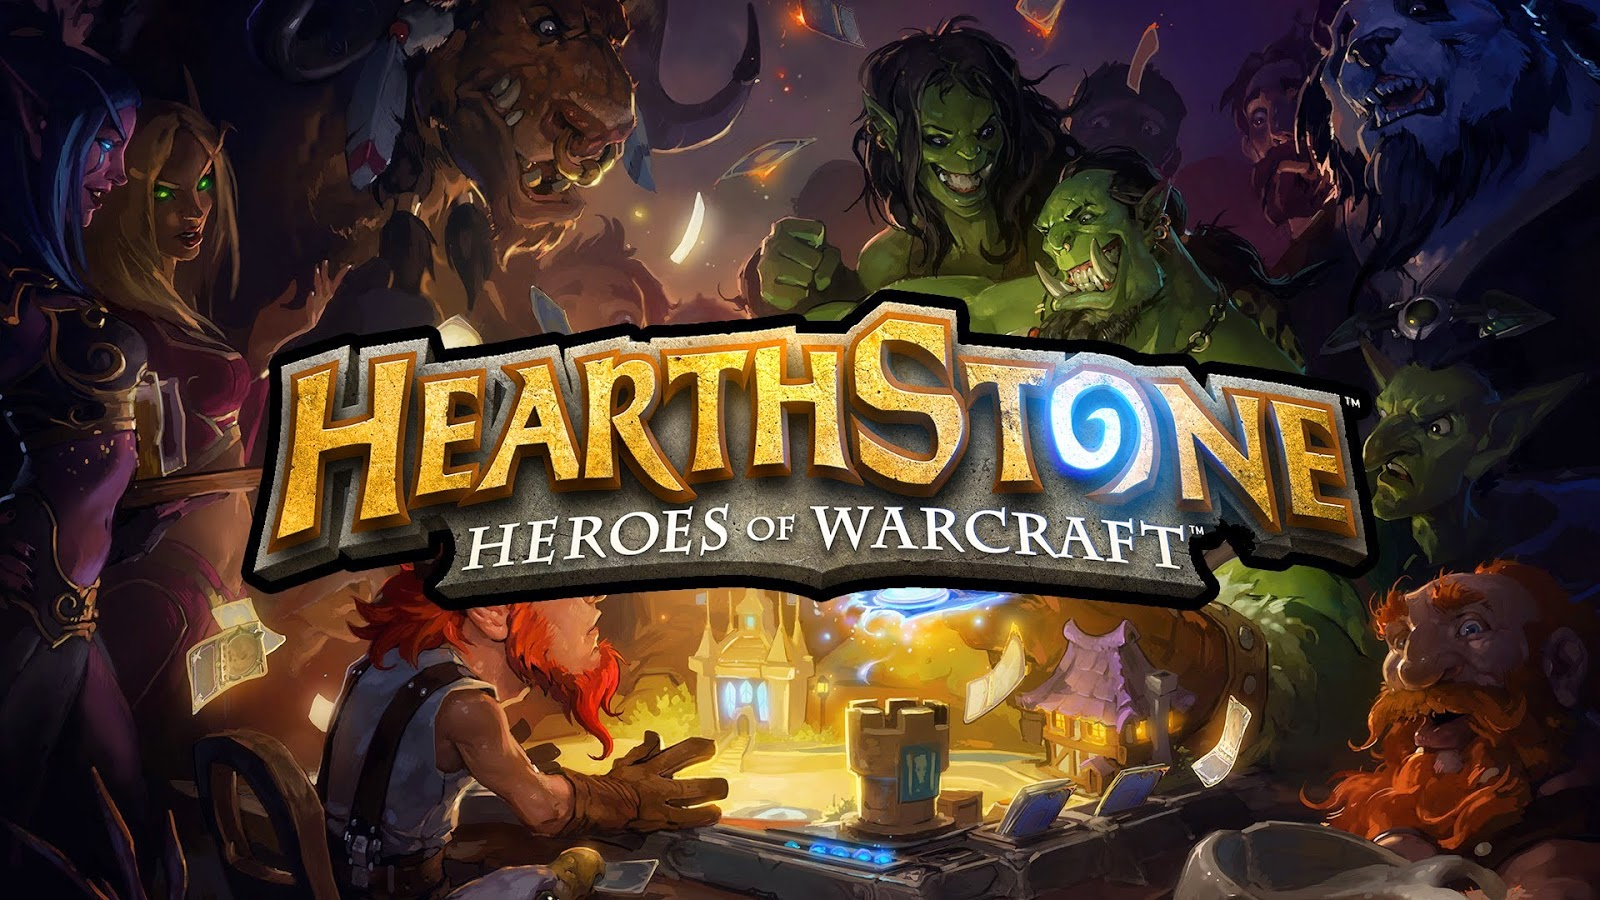 Blizzard's Hearthstone